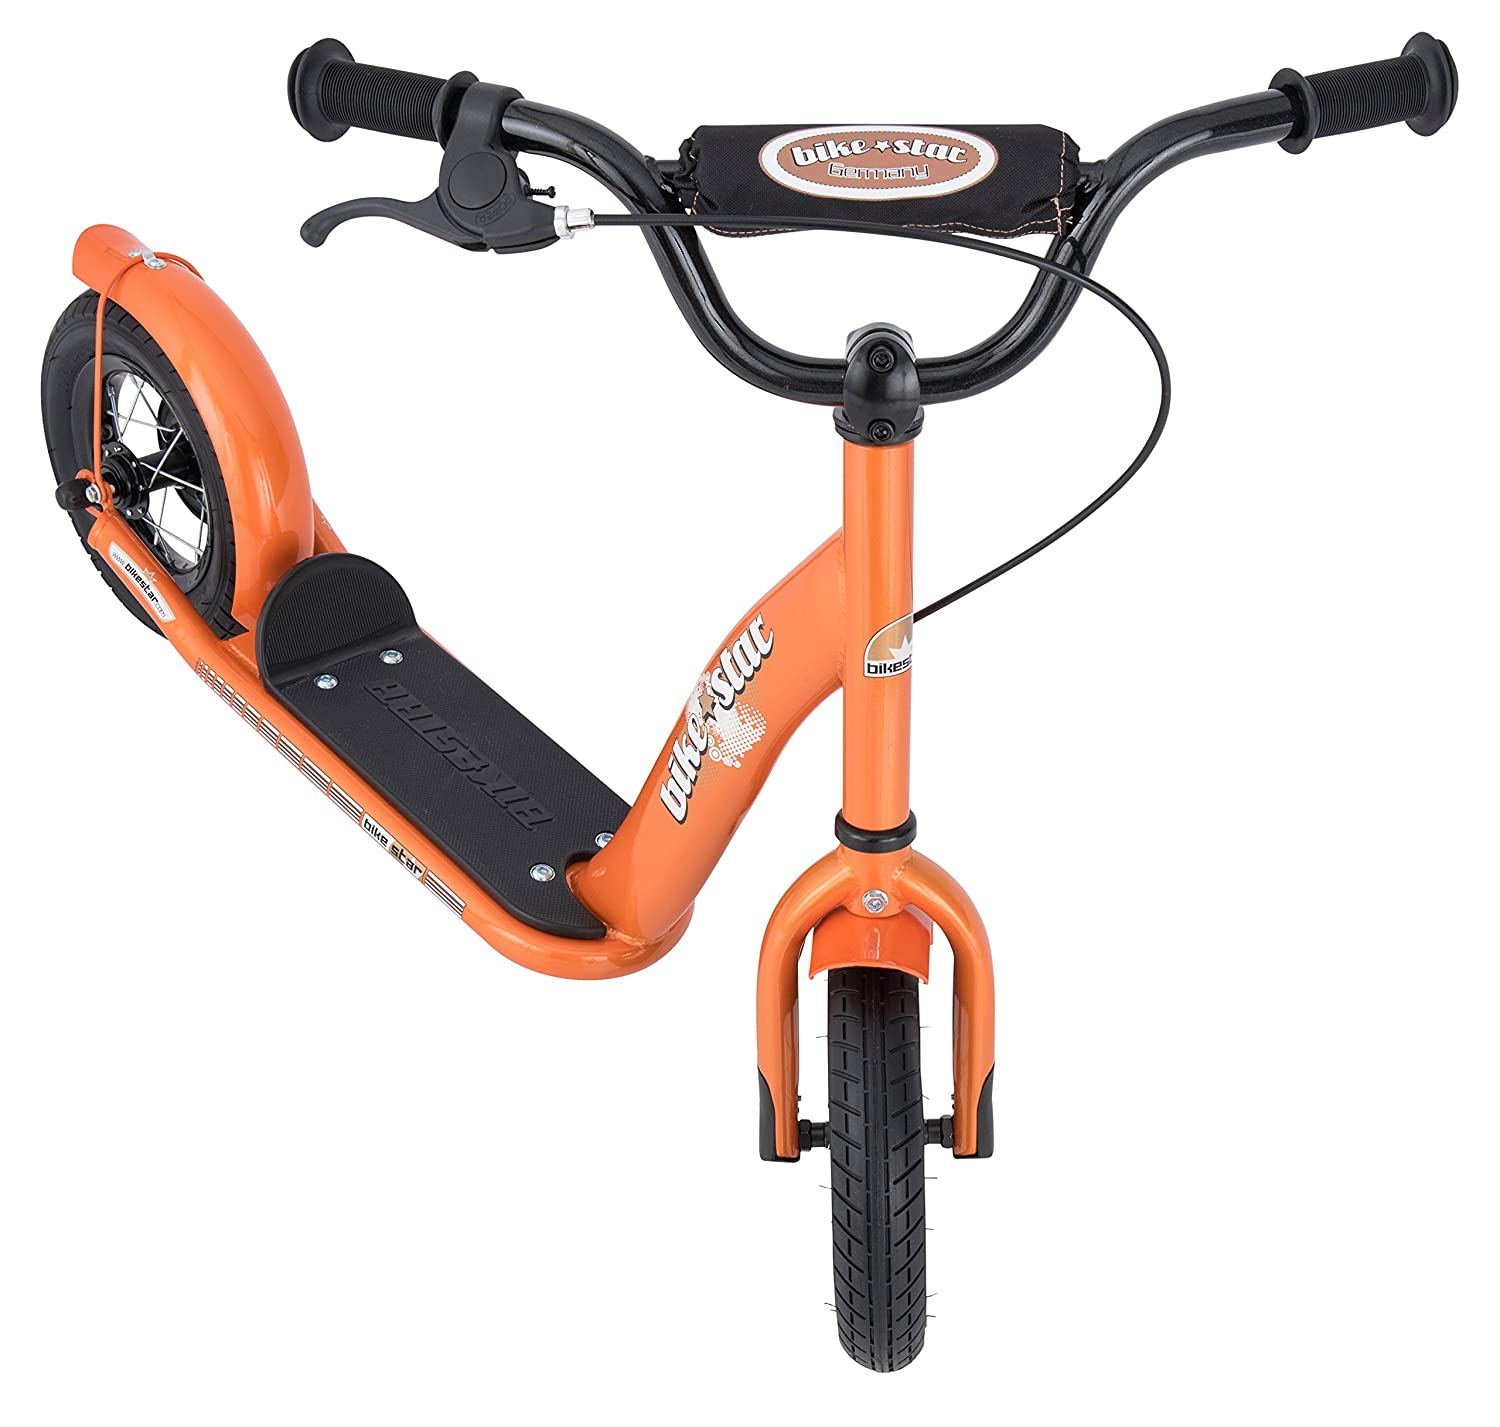 10 Inch Alloy Wheels Boys and Girls Star-Trademarks Star Trademarks/_SC-10-KK-01-BLUE BIKESTAR Original Safety Pro Sport Push Kick Scooter Kids with Brakes Mudguard and air Tires for Age 5 Year Old Children